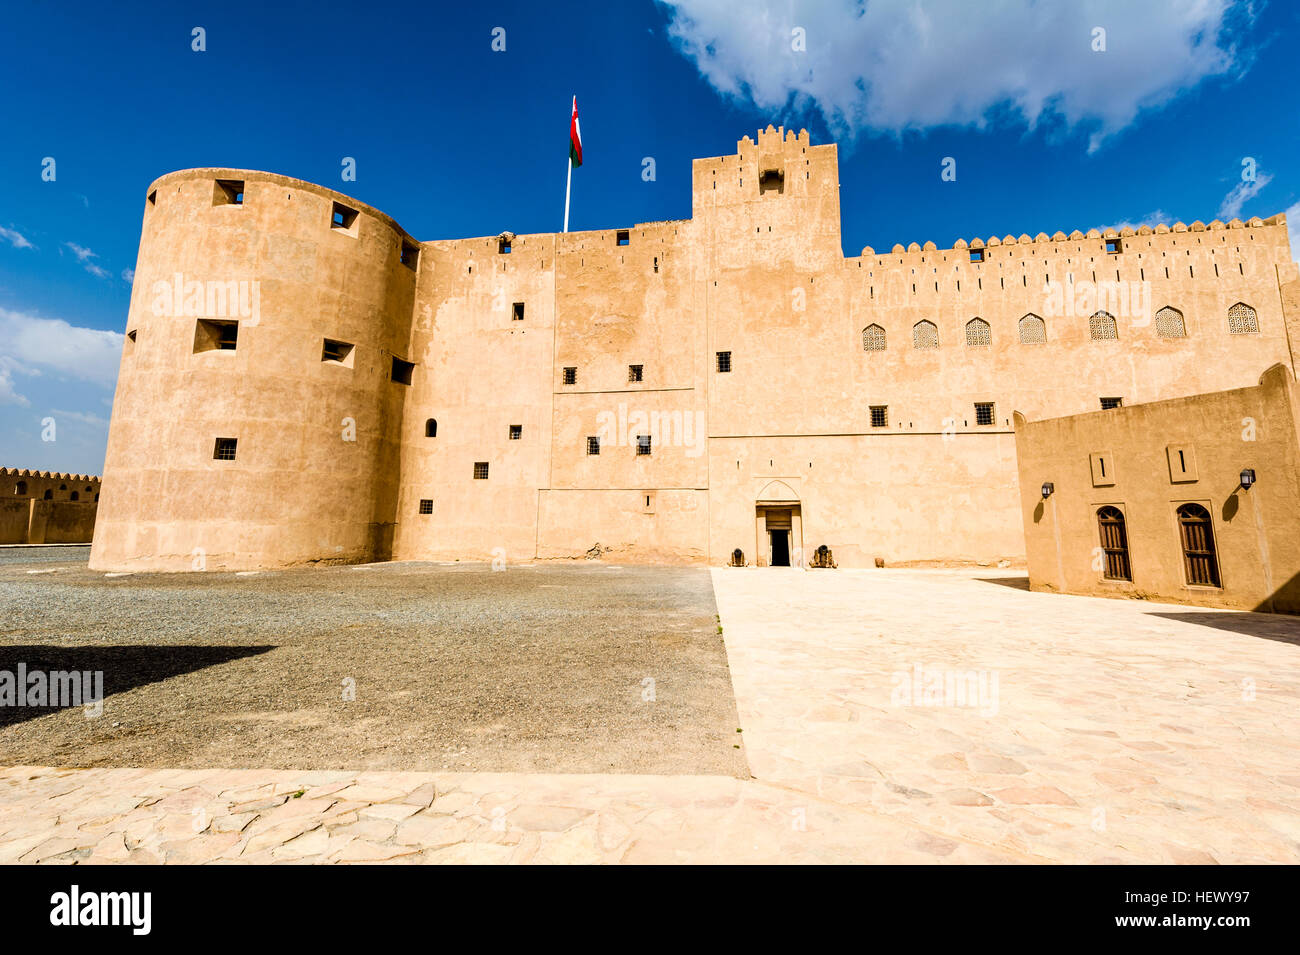 A vast forecourt surrounded by imposing walls and watchtowers in an ancient fort. - Stock Image